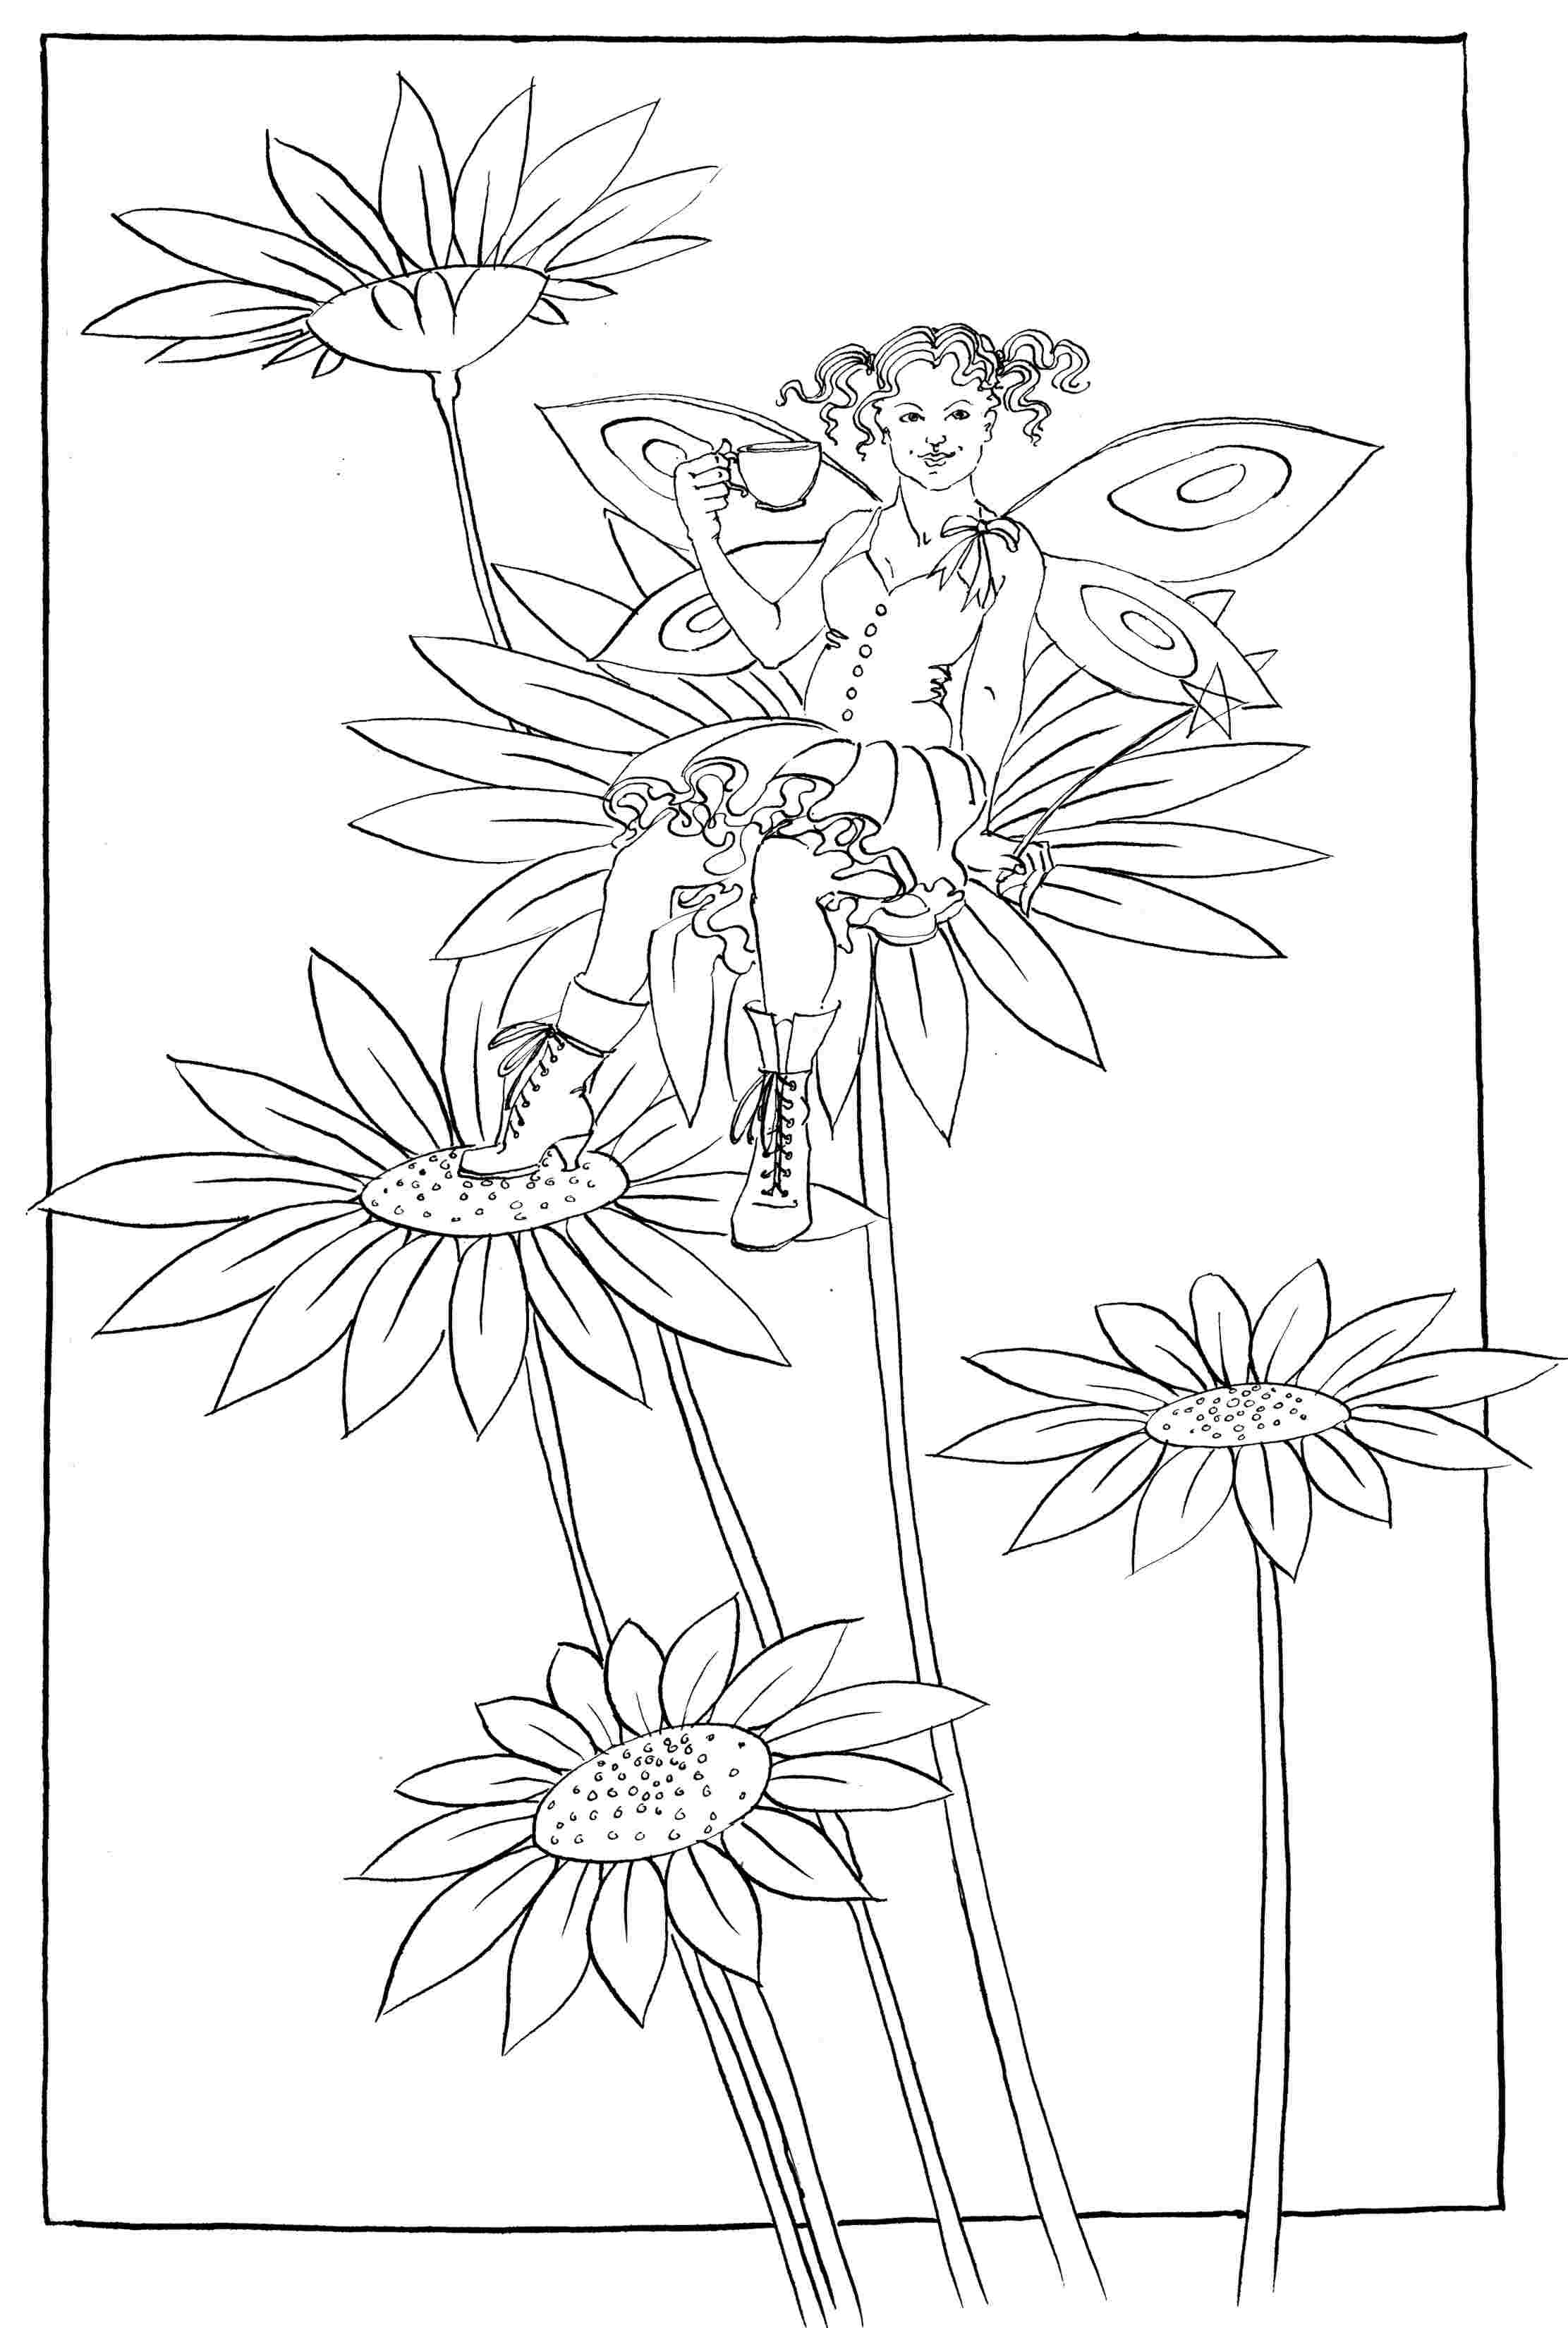 Daisy Boots - colouring-in drawing - to download, right click and save, print out and colour in!